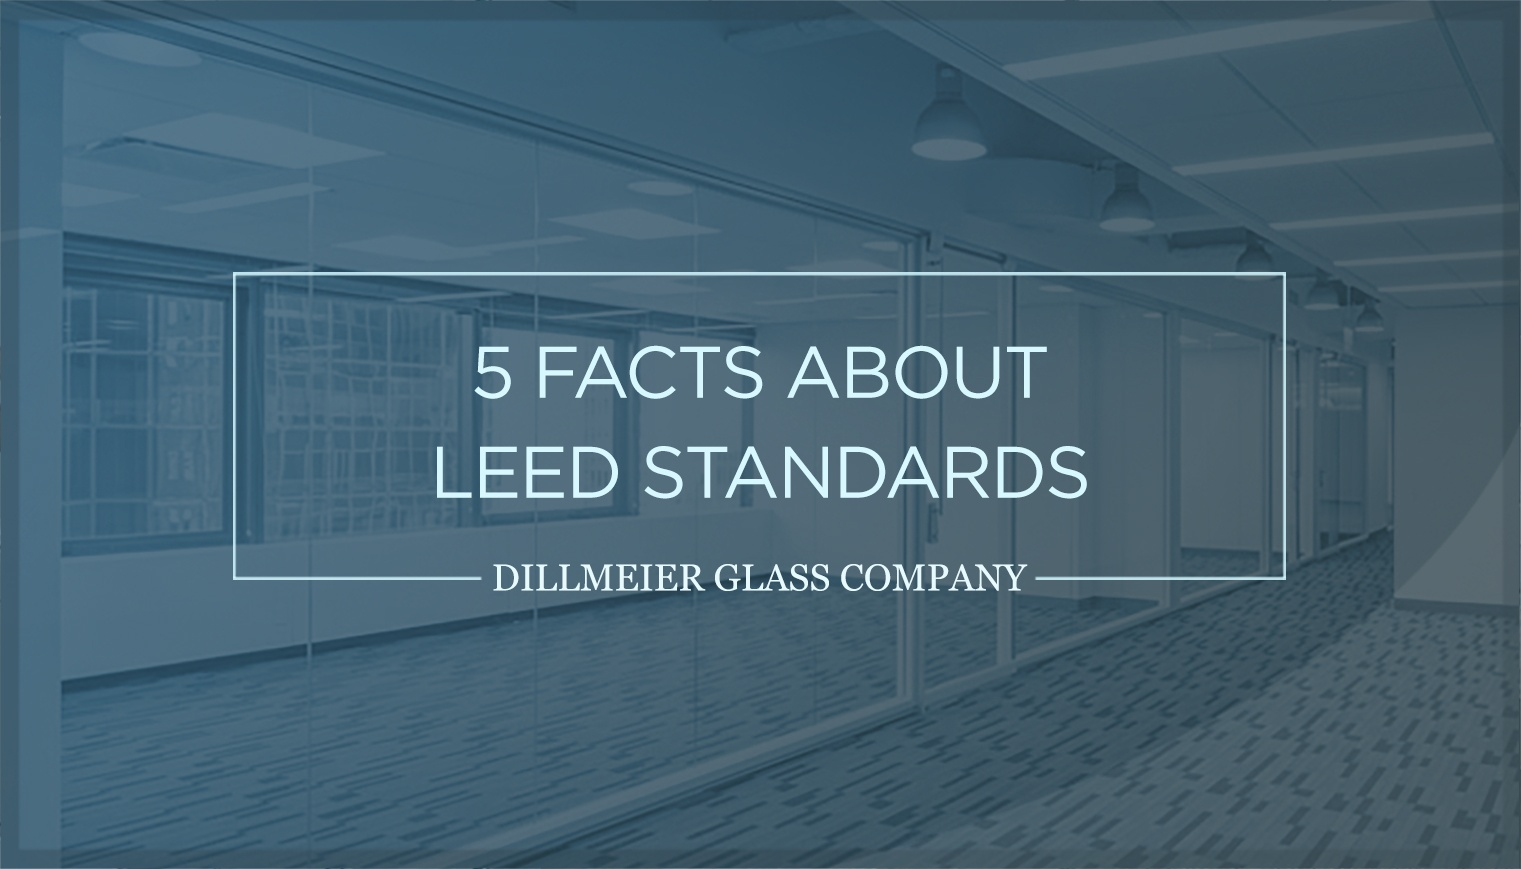 5 Facts About LEED Standards